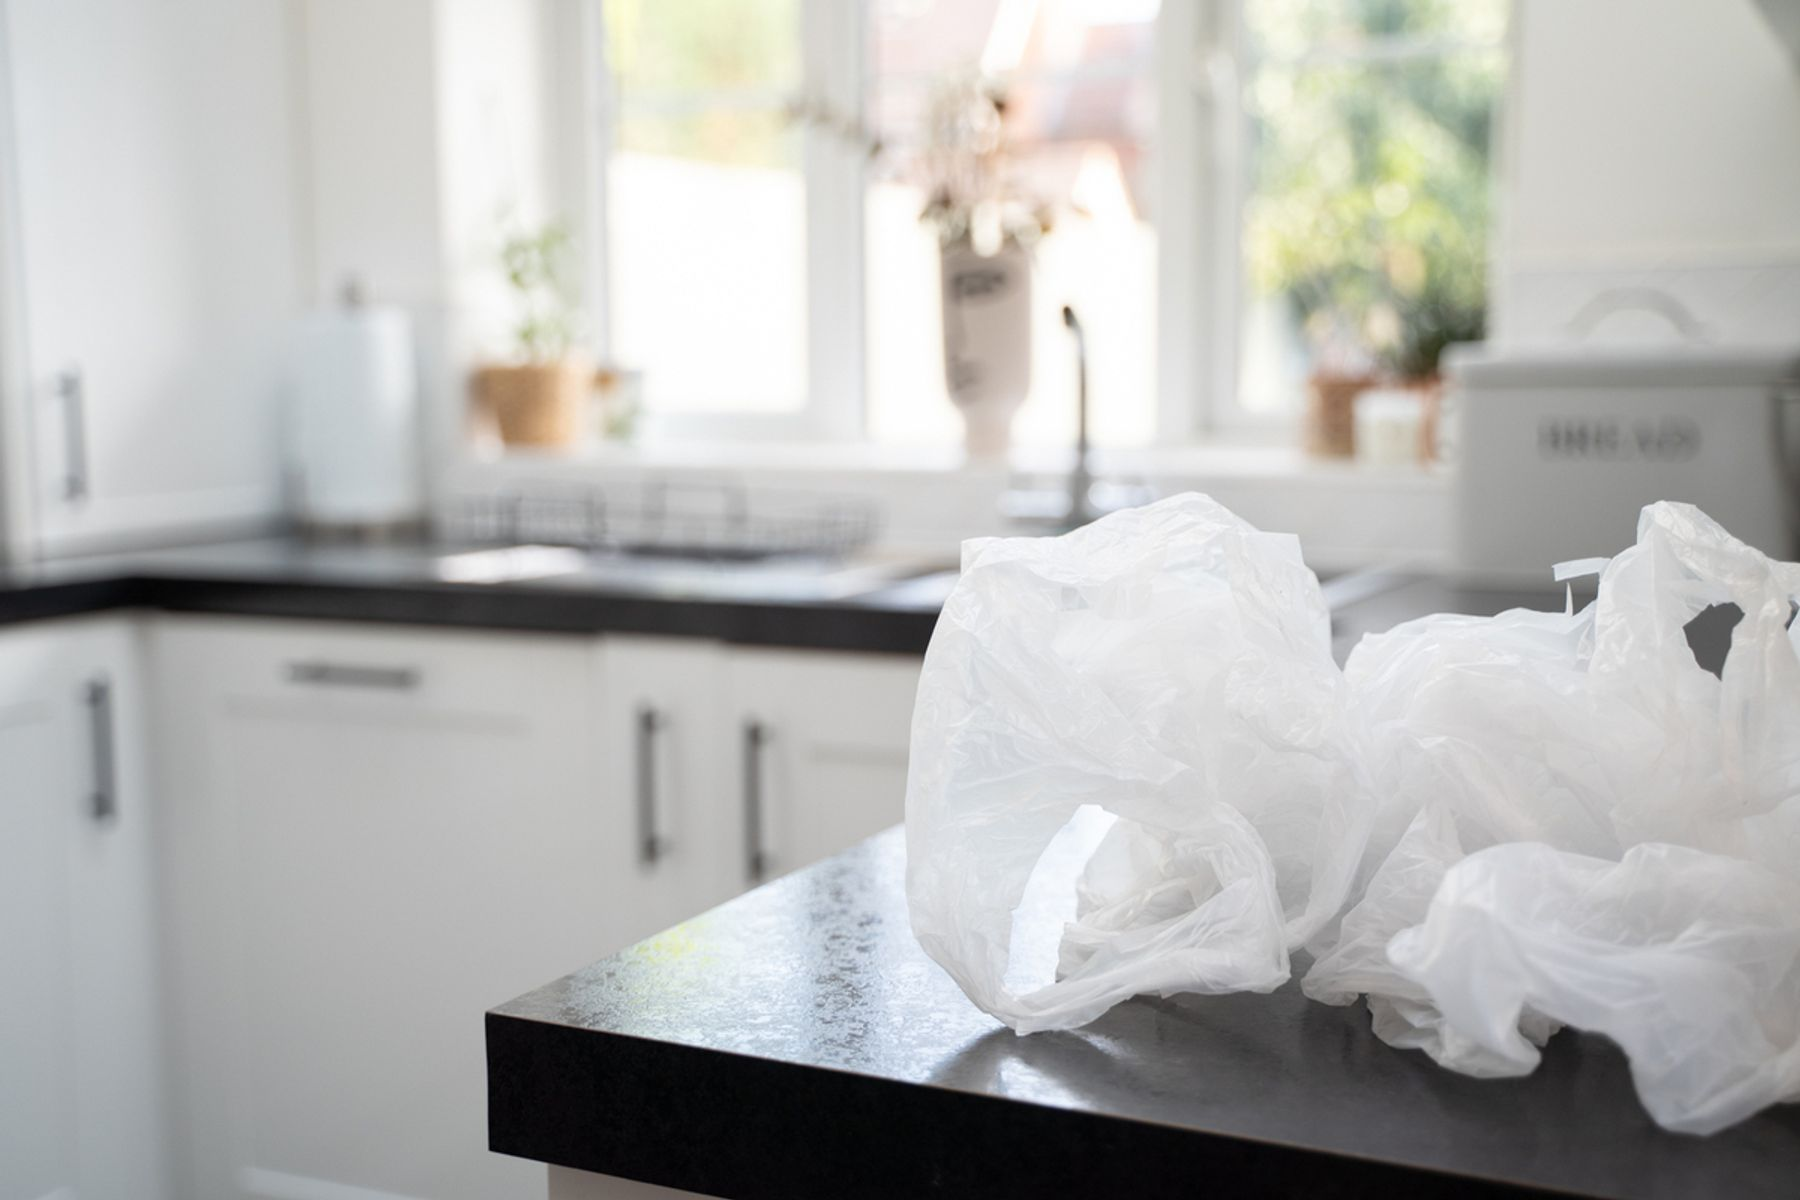 Plastic bags on a kitchen counter